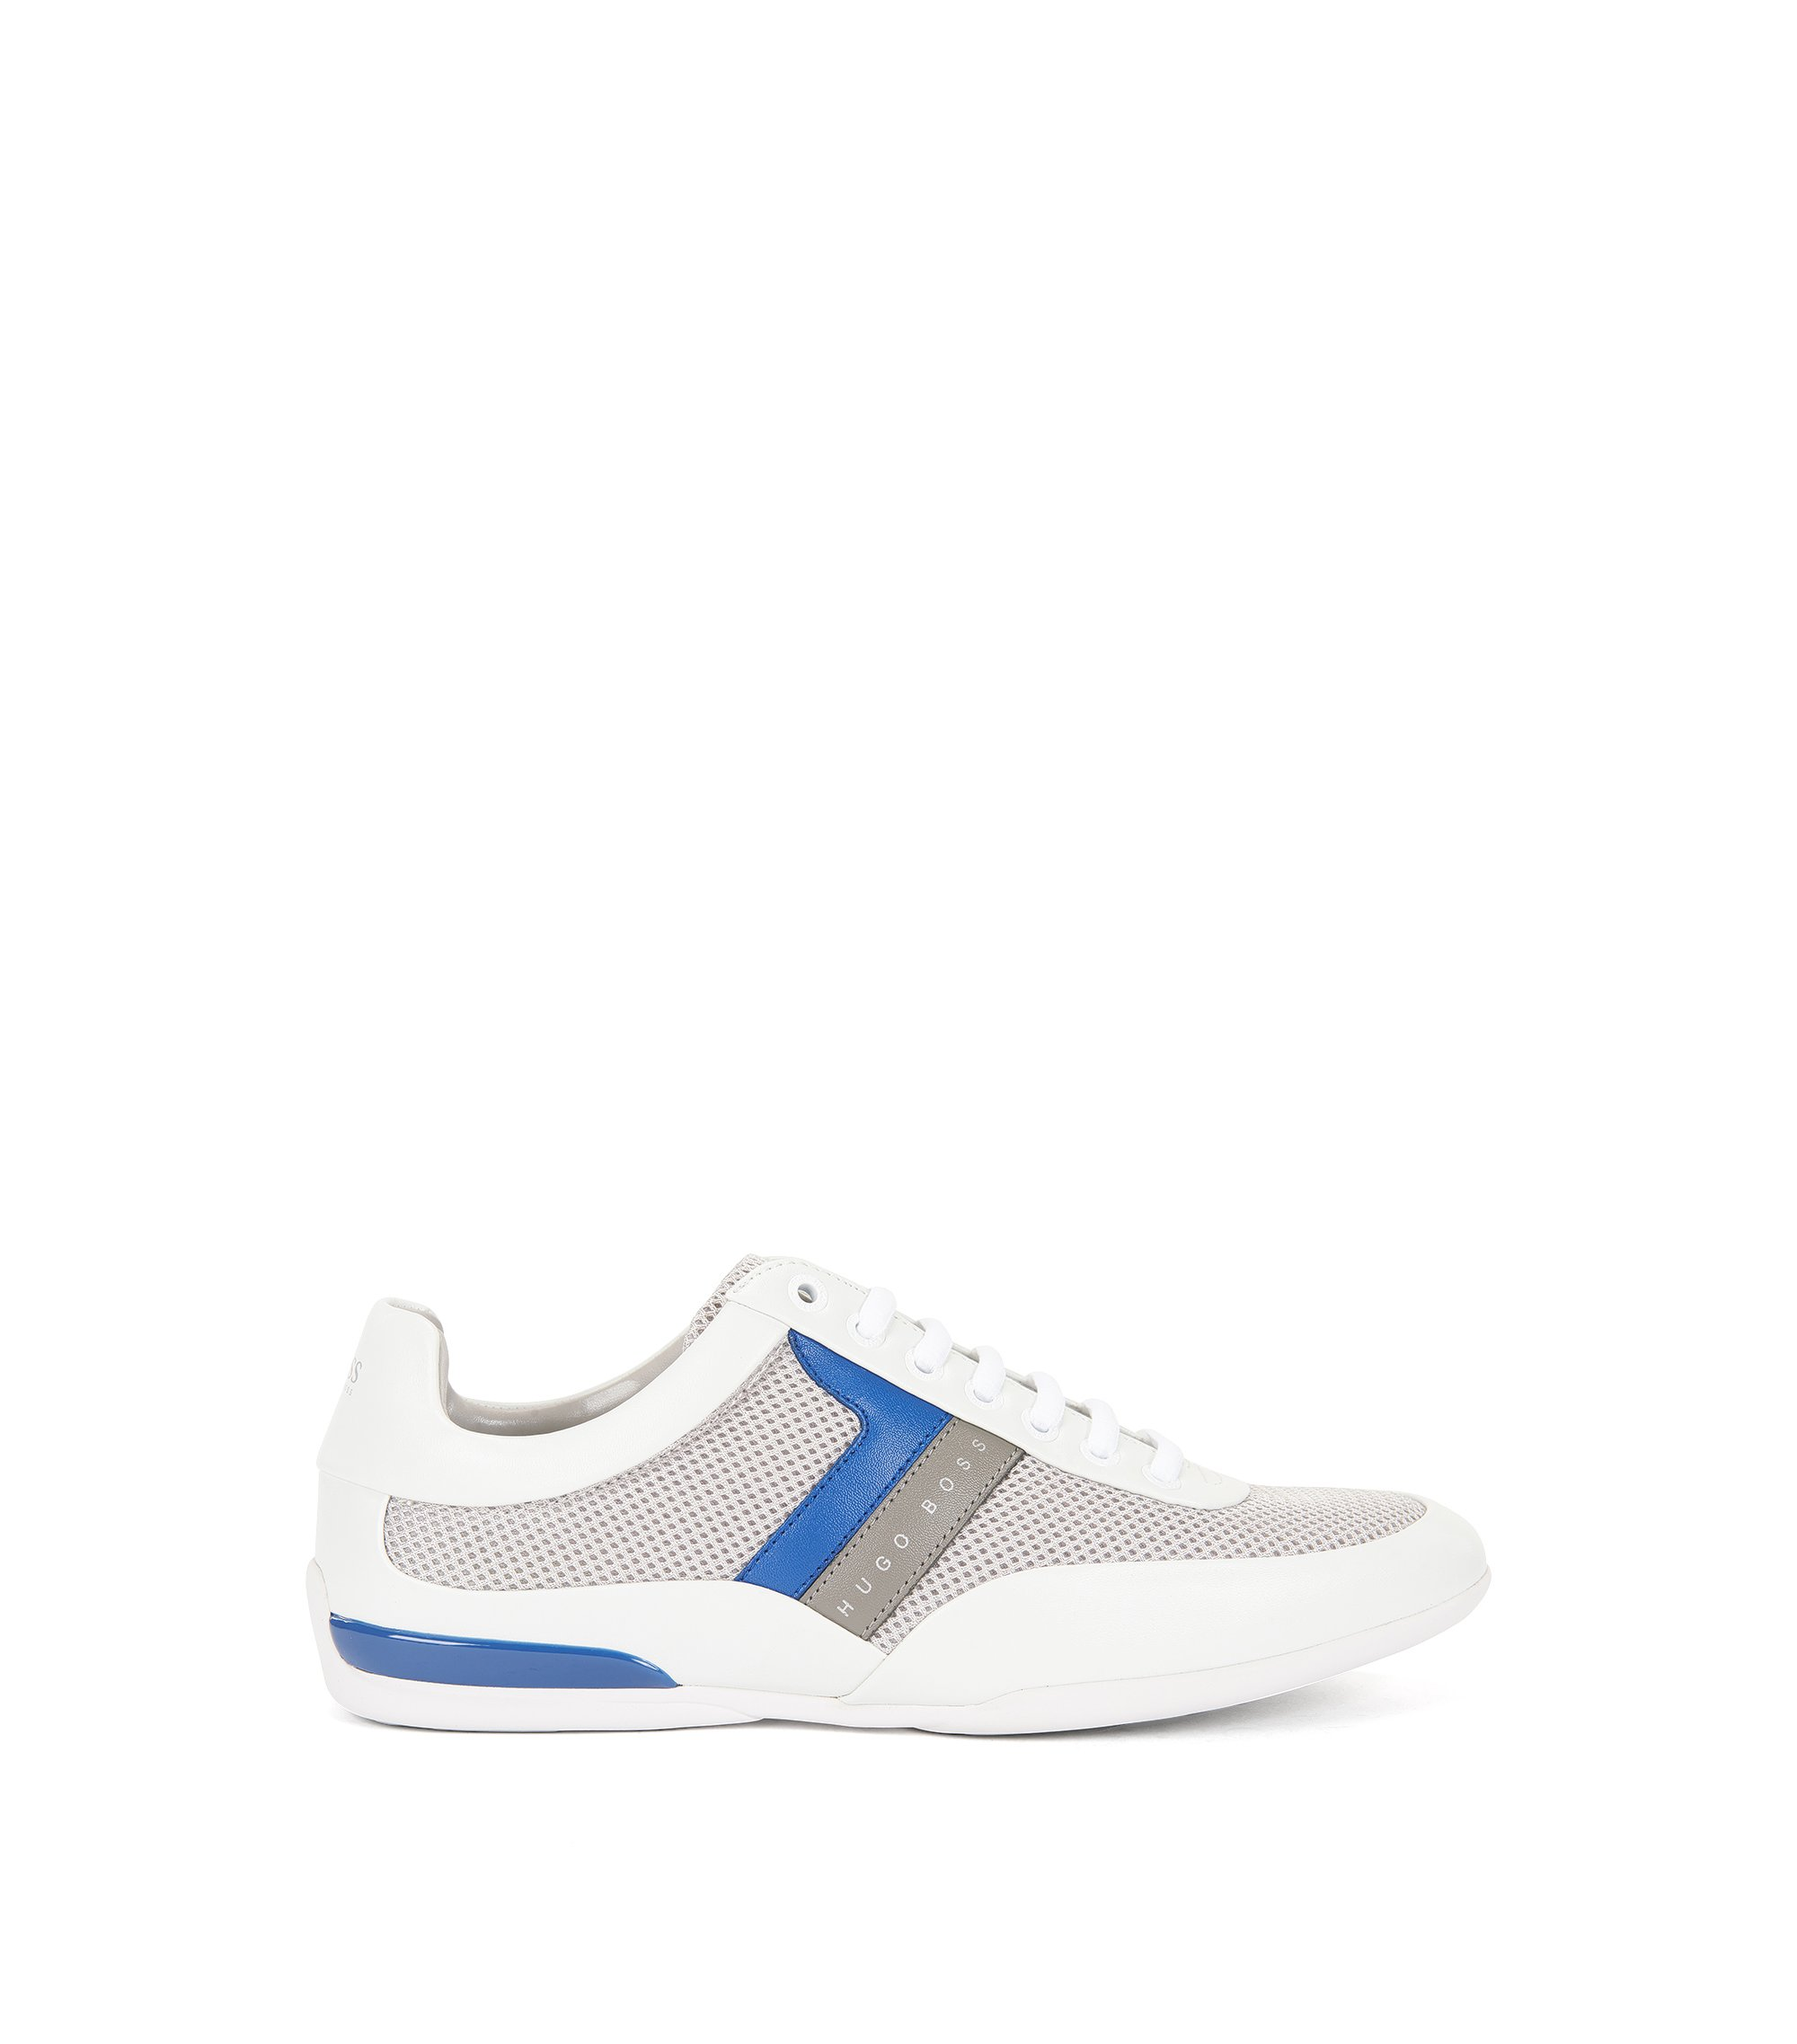 Vegan Leather Sneaker | Space Lowp Syme, Open White